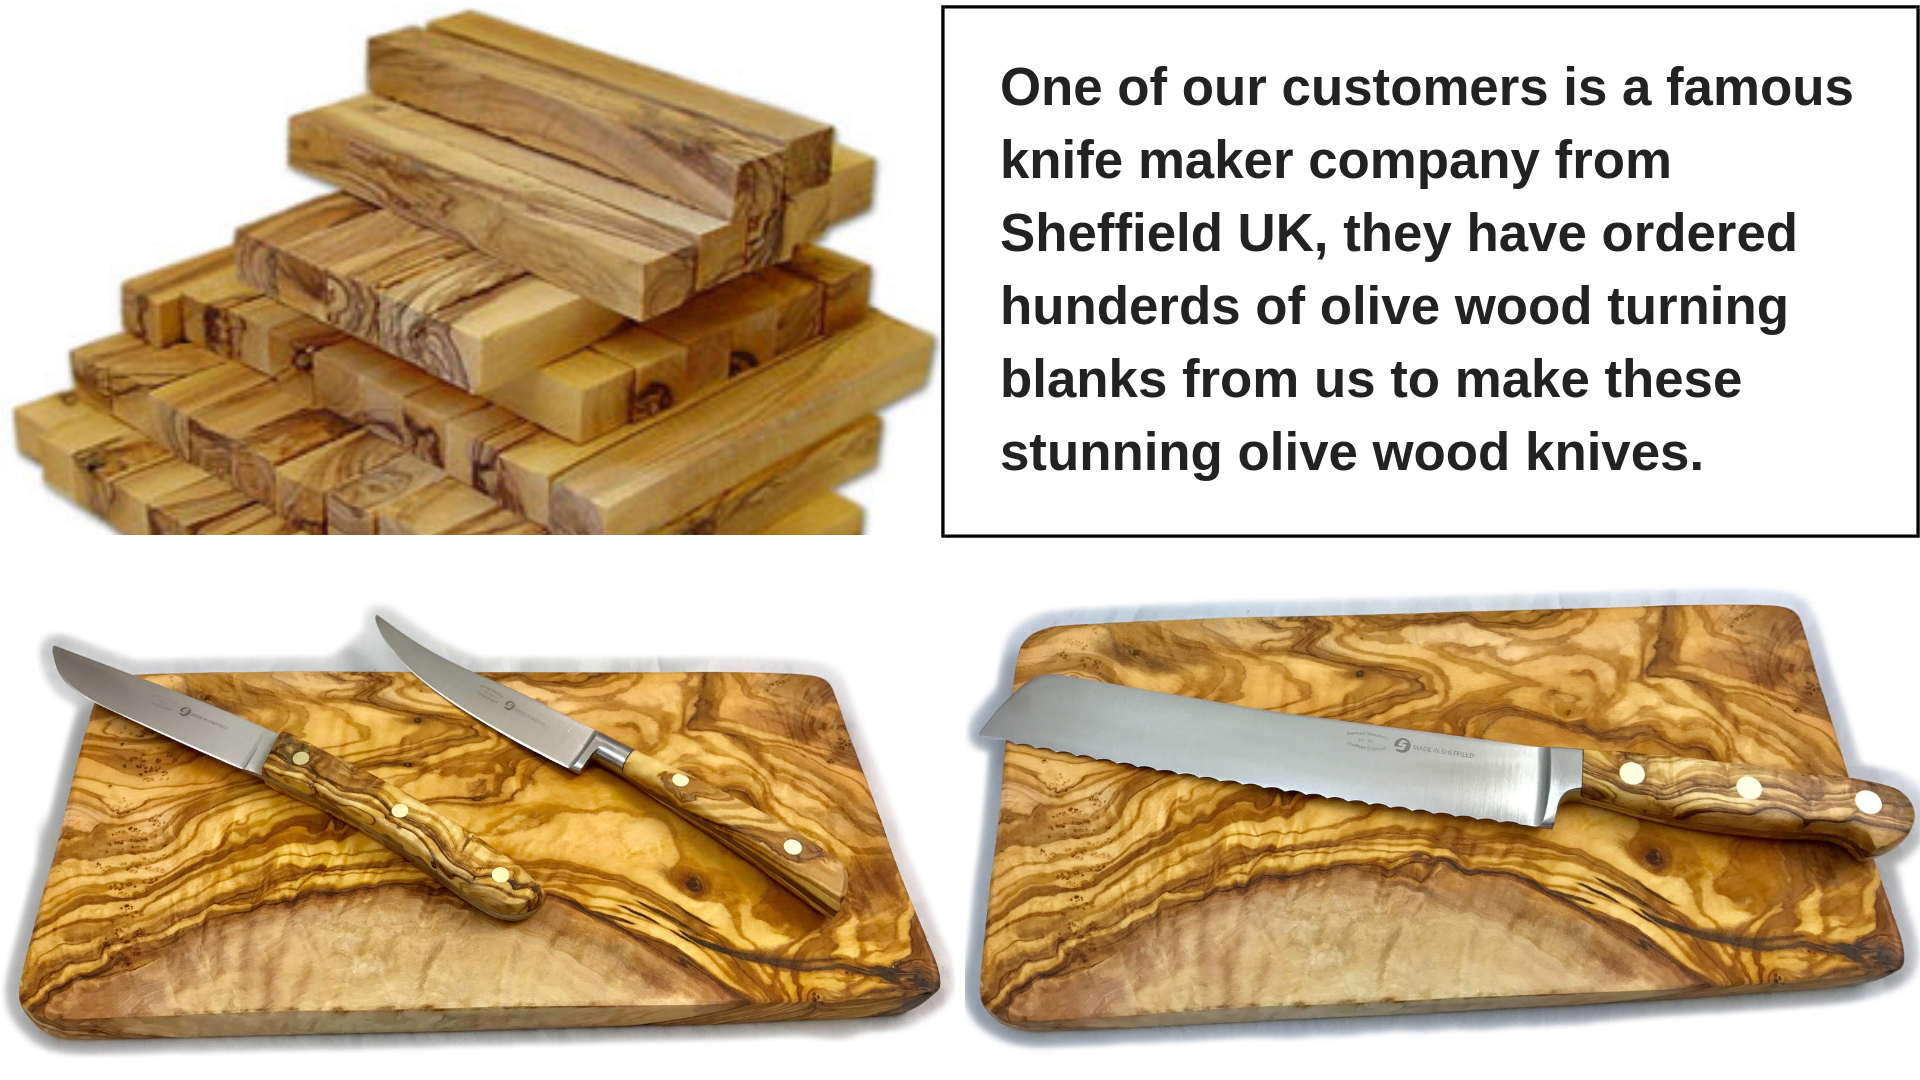 olive wood engraving branding olive wood woodturning blanks by MR OLIVEWOOD®